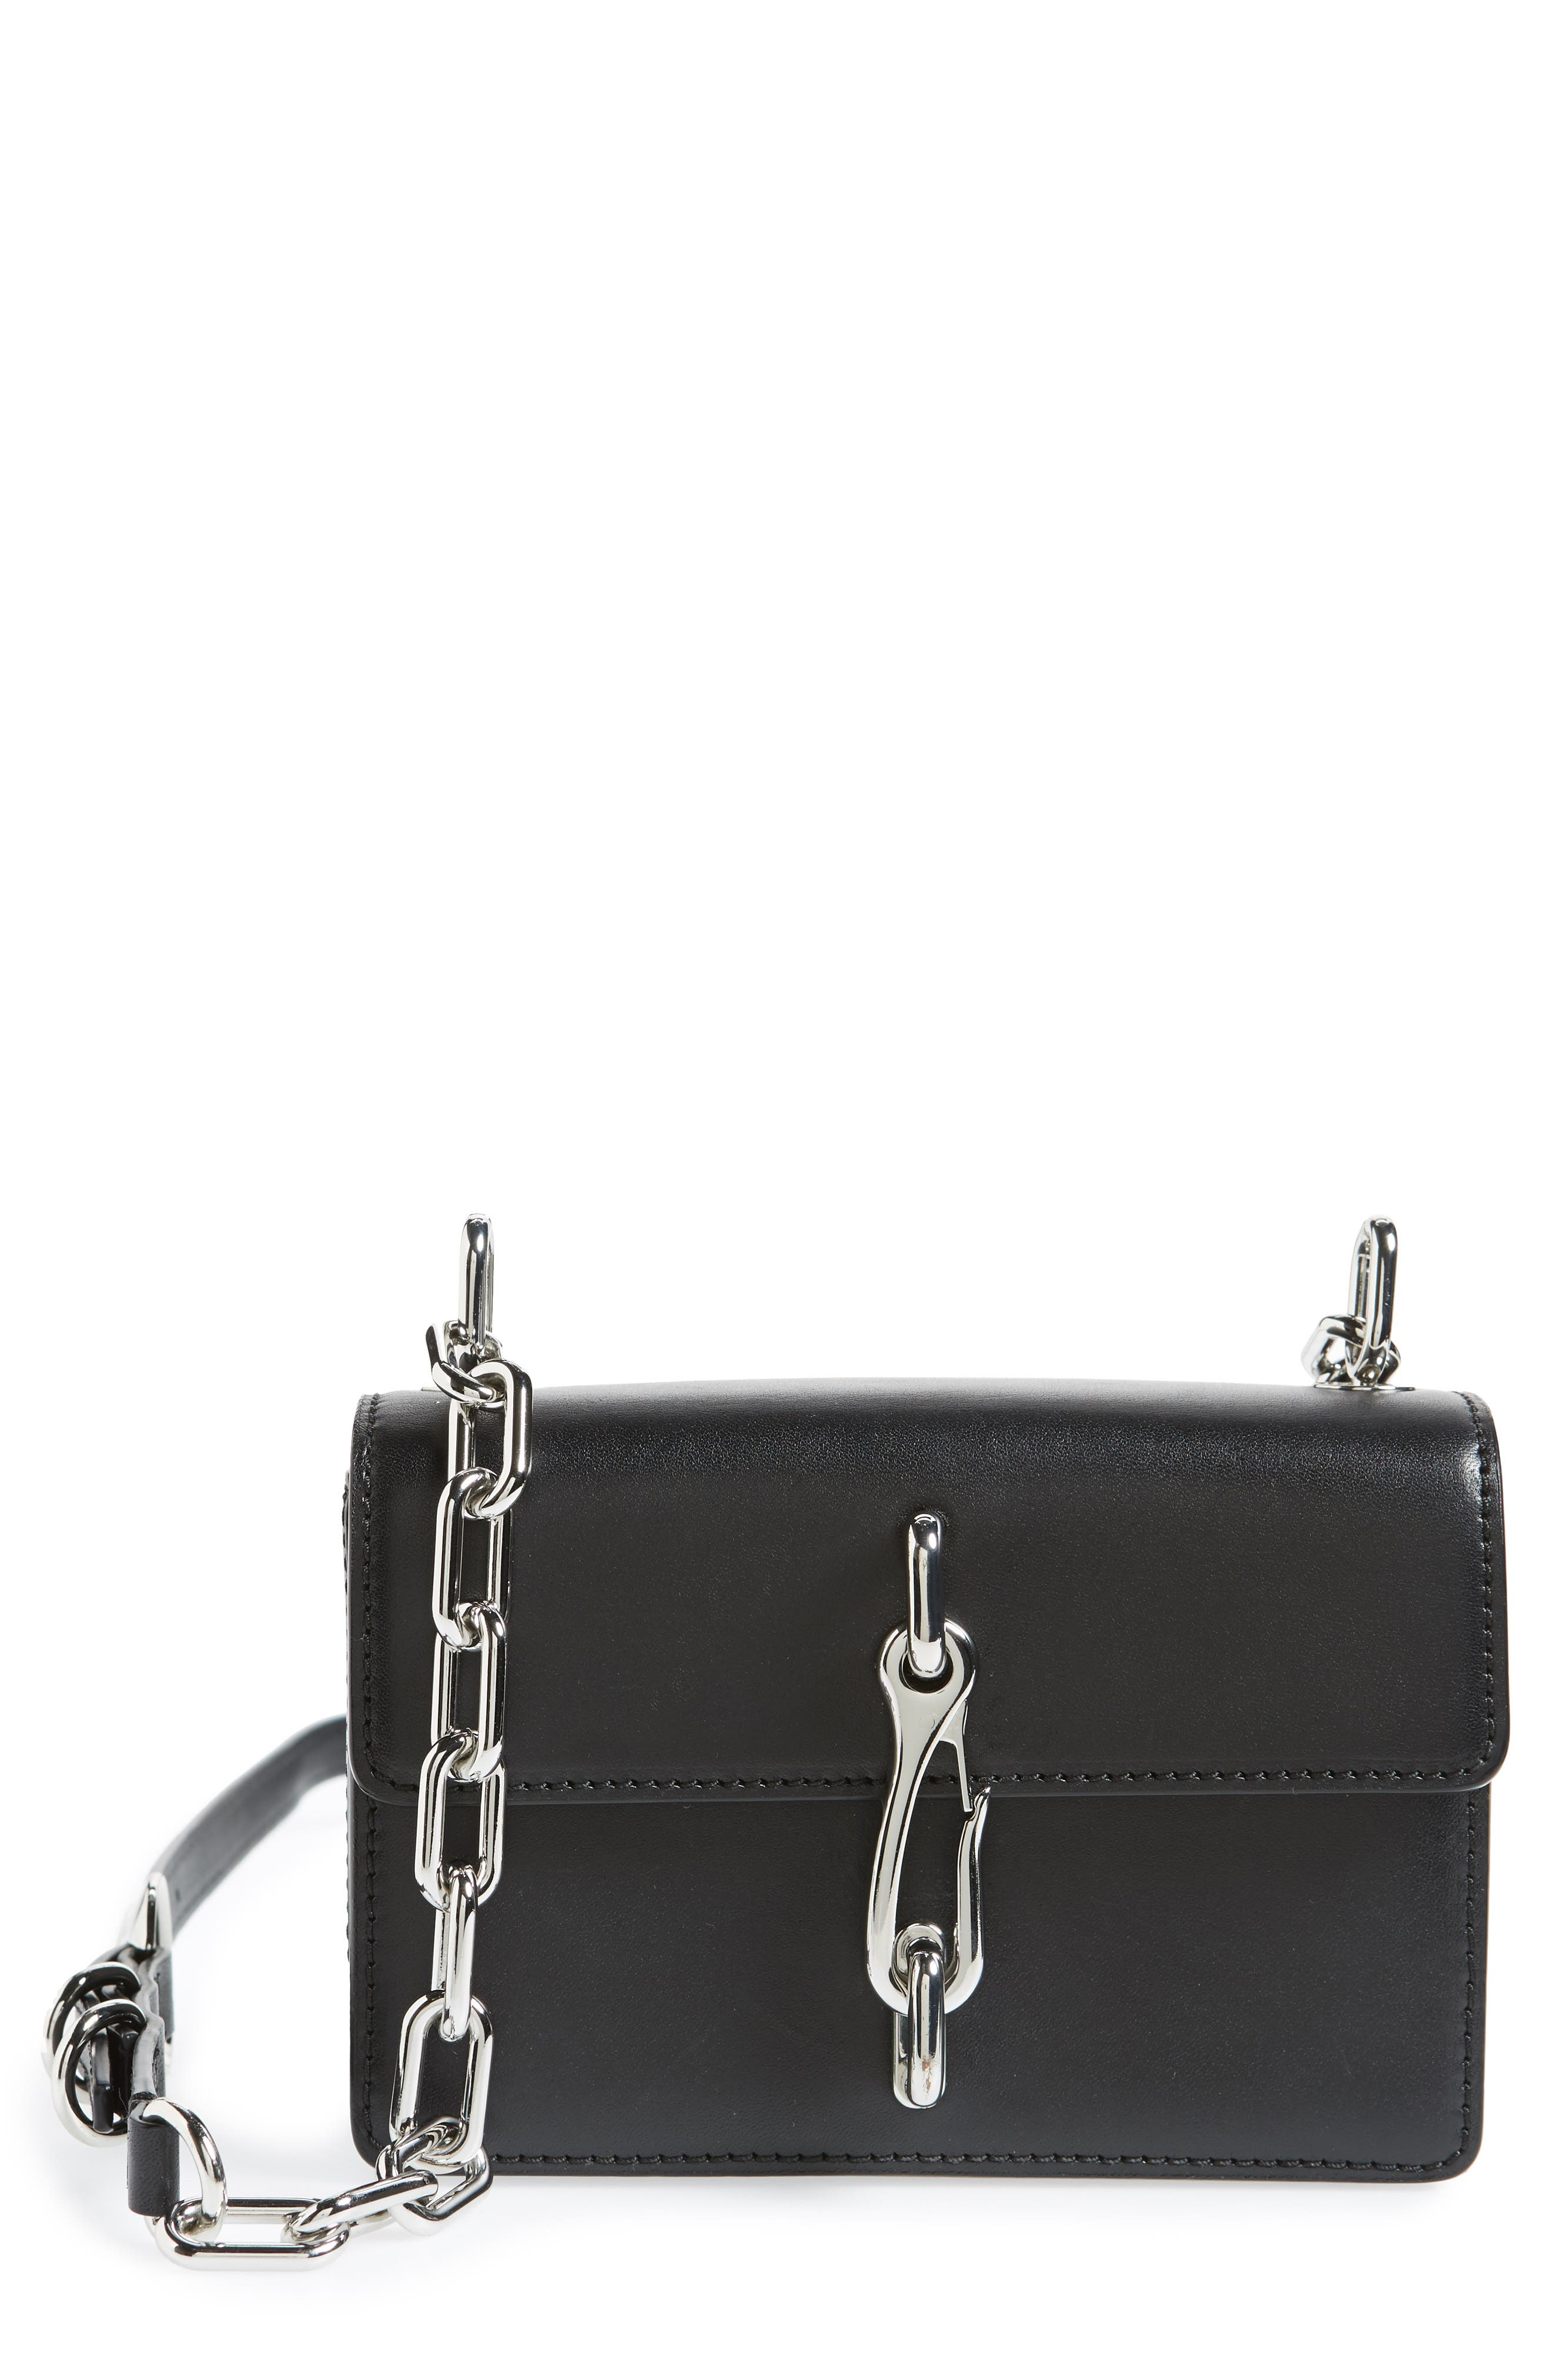 Hook Small Leather Crossbody Bag,                         Main,                         color, Black